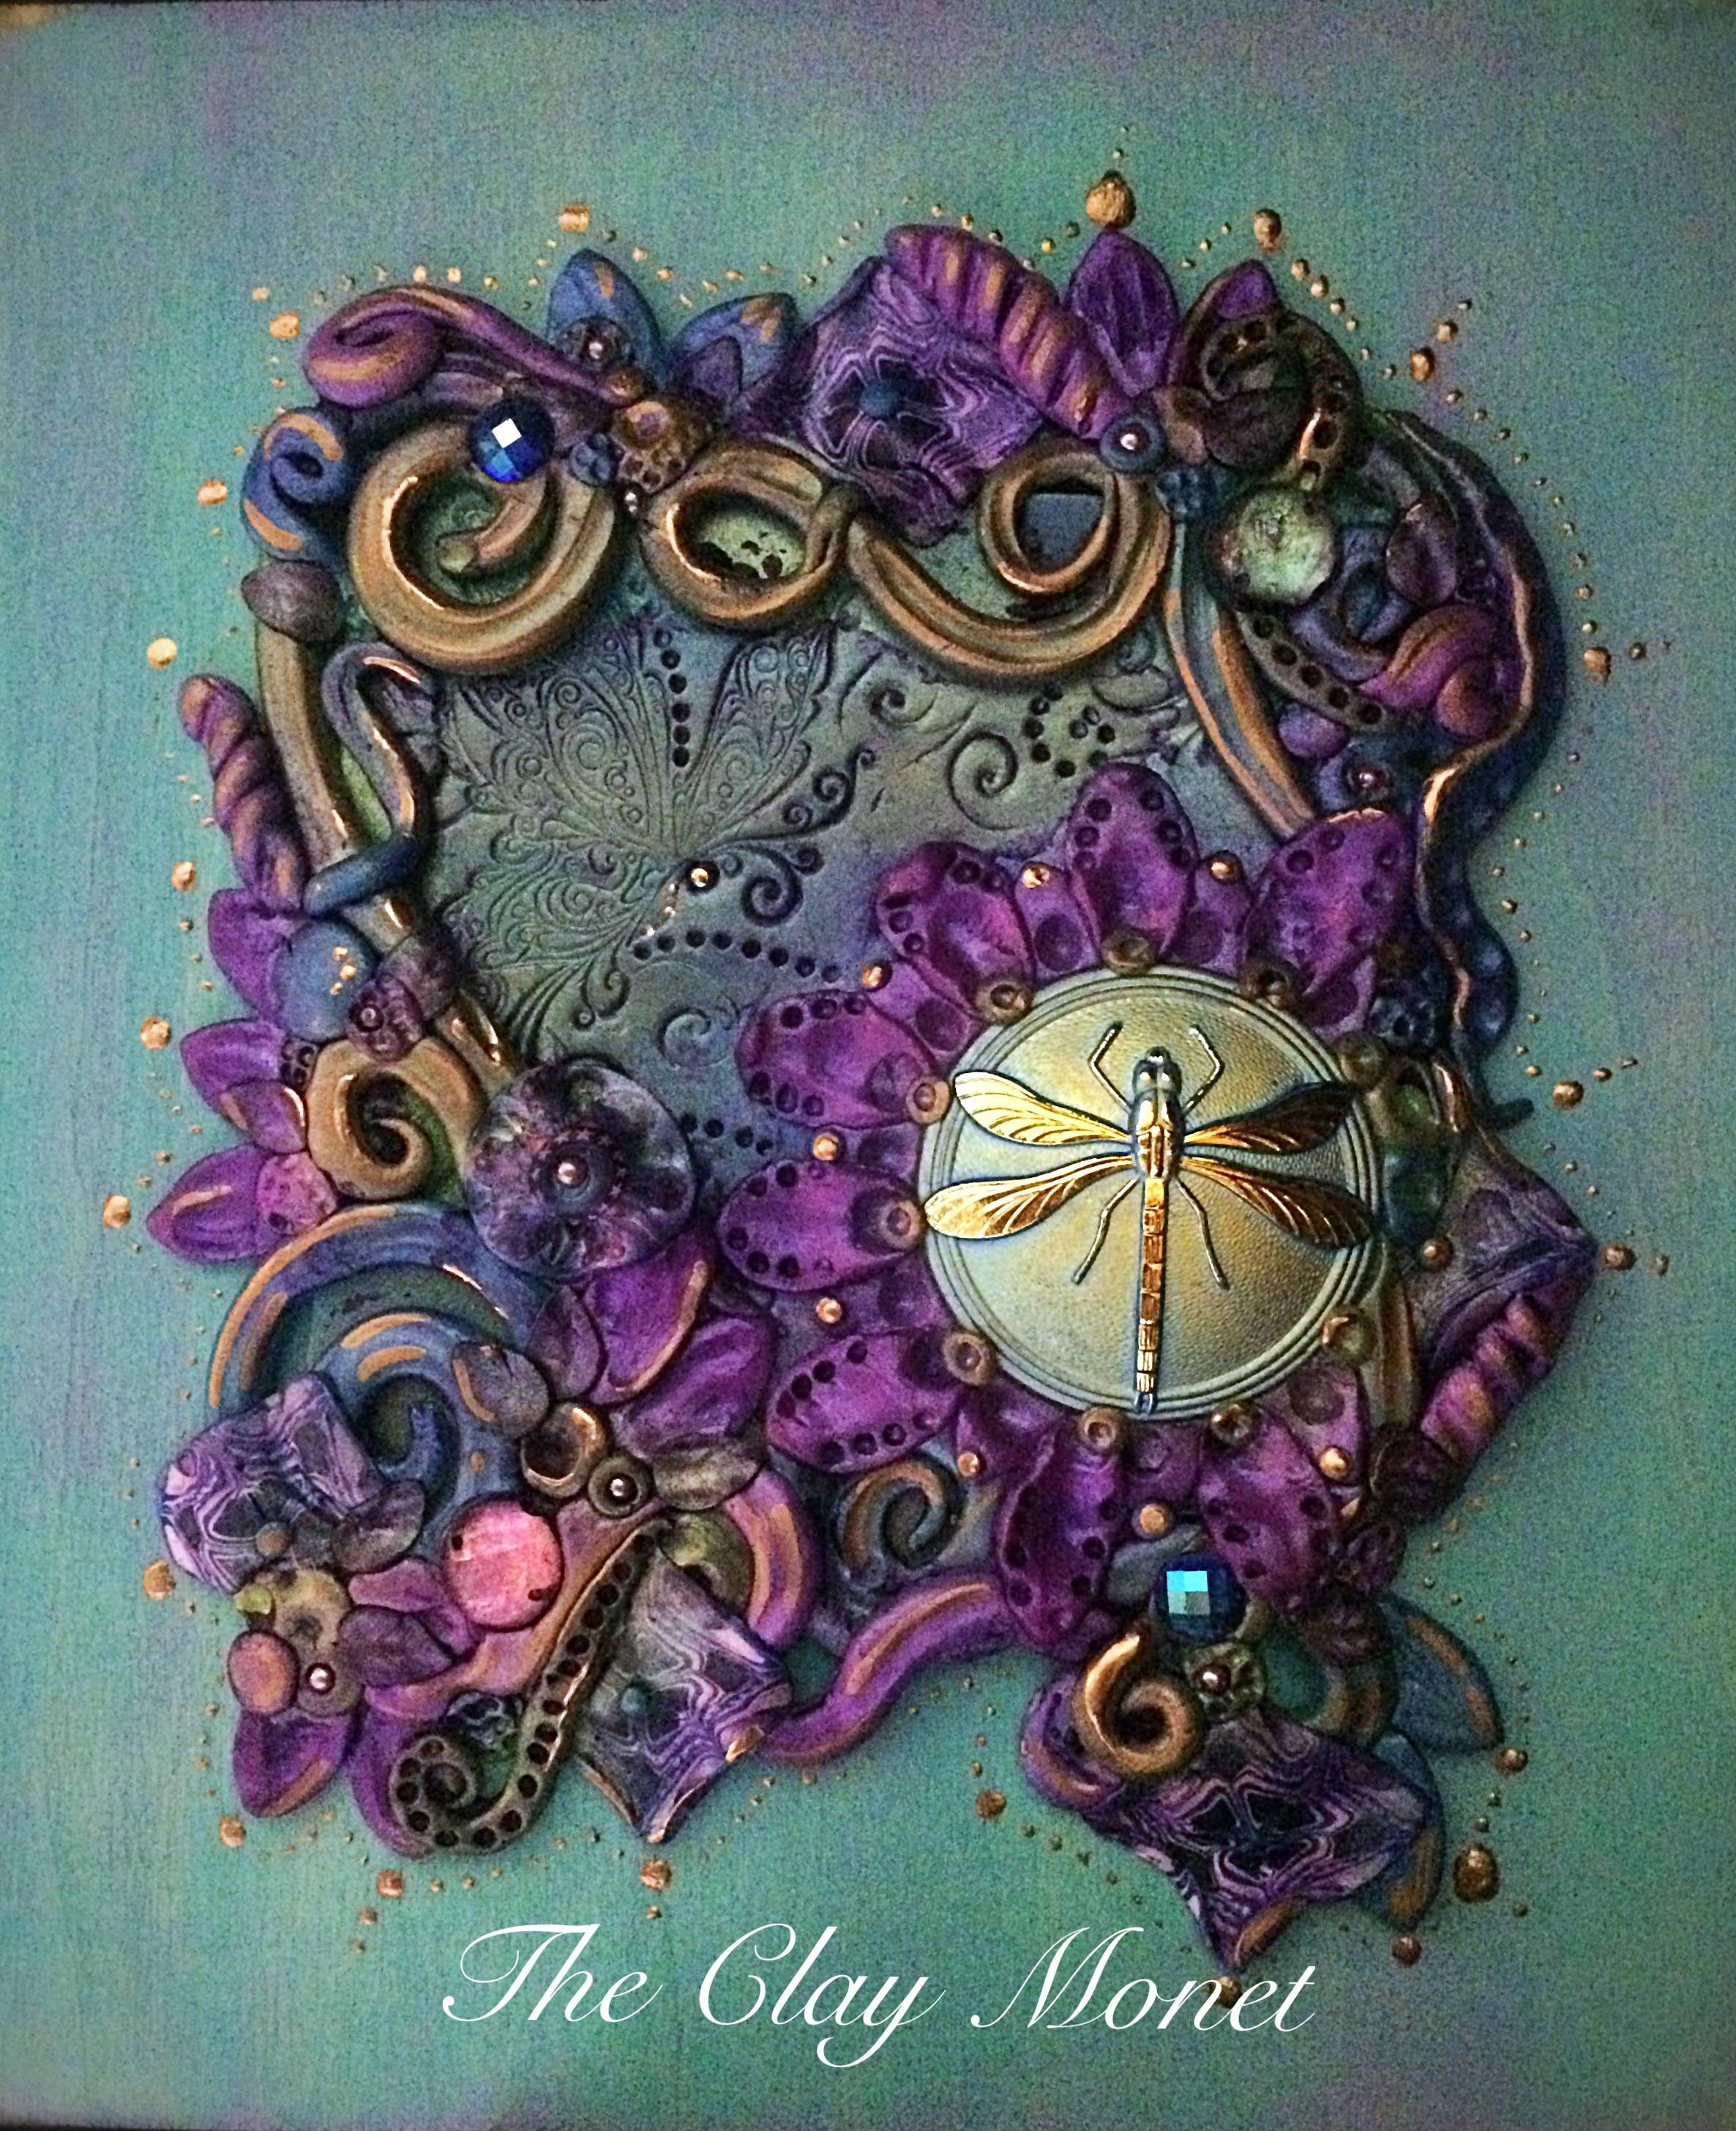 Moon Glow Enchanted Dragonfly Polymer Clay Hanging Wall Plaque Pertaining To Most Current Polymer Clay Wall Art (View 16 of 20)